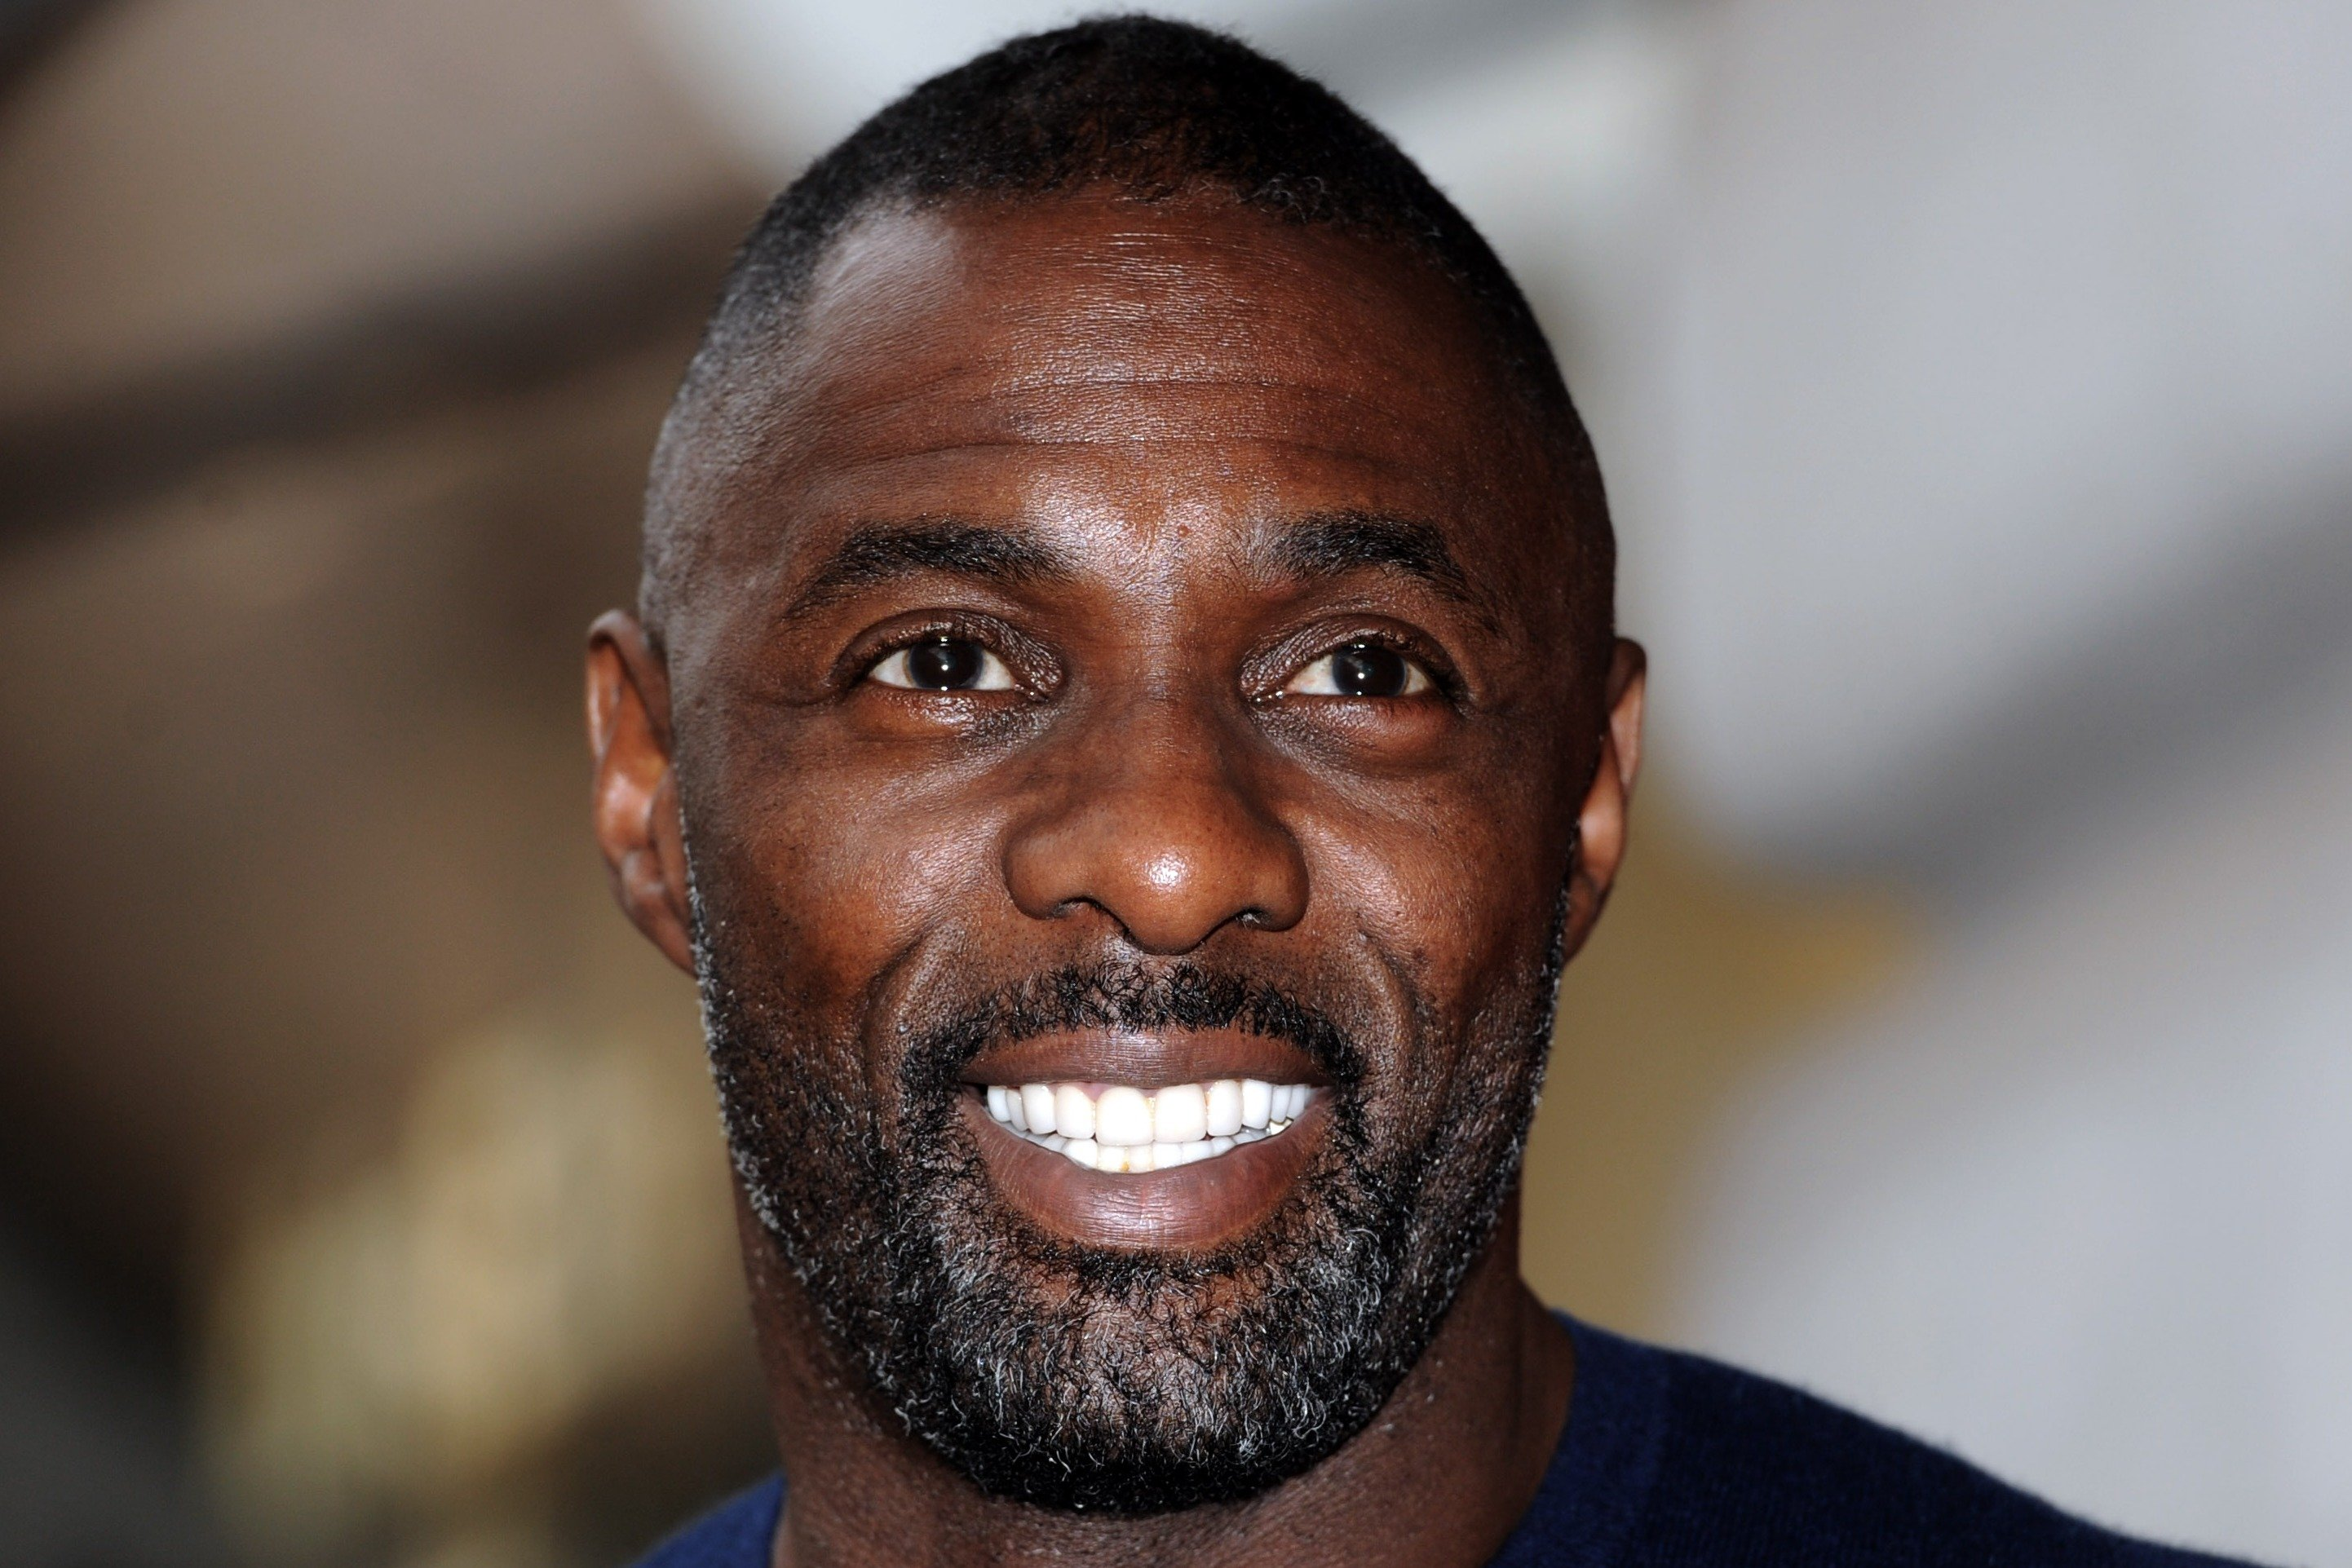 Image Credit: Getty Images/Stuart C. Wilson |  Idris Elba attends a photocall to launch the Superdry AW15 Premium Menswear collection